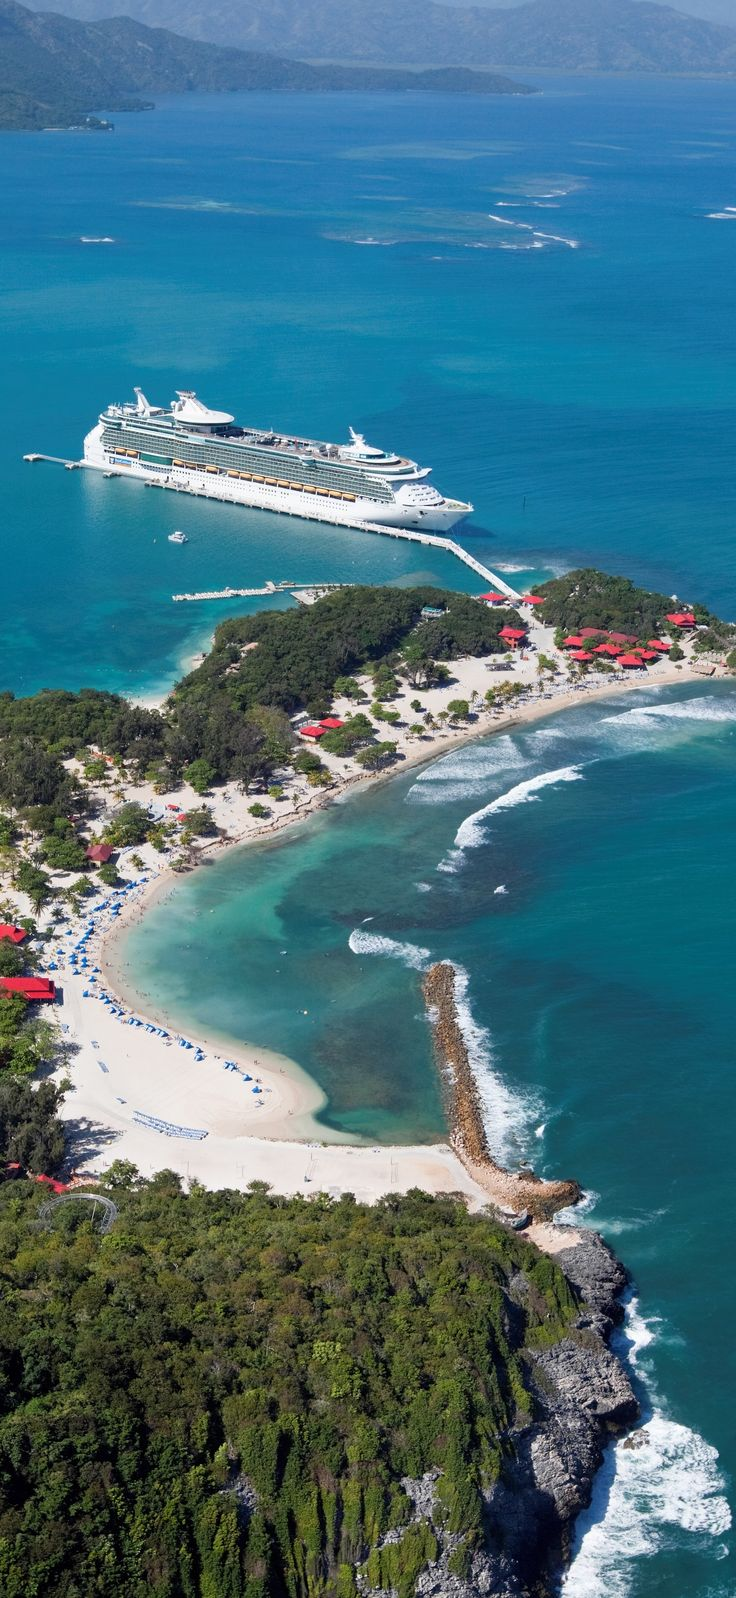 Dream vacation on Navigator of the Seas in Labadee.: Royals Caribbean Cruises Ships, Belize Vacations Cruises, Beautiful, Crui Vacations, Caribbean Islands Cruises, Amazing Places, 2014 Crui, Haiti, Celebrity Cruises Line